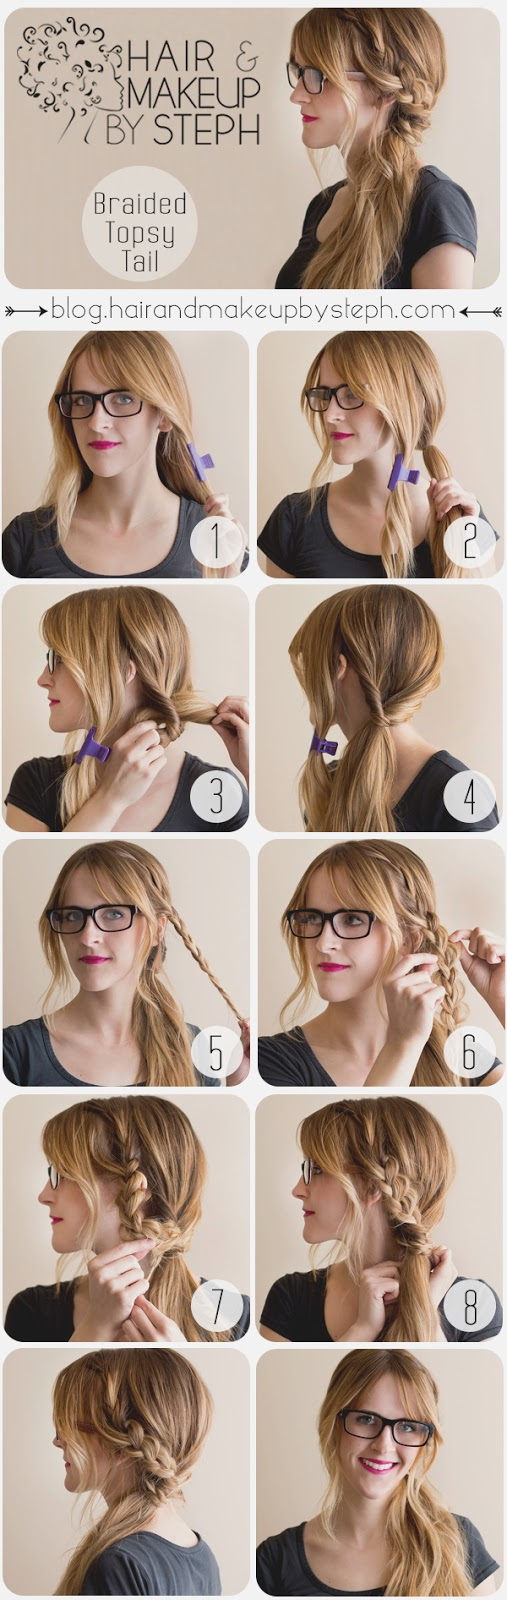 18 Easy Step by Step Tutorials for Perfect Hairstyles - Style Motivation